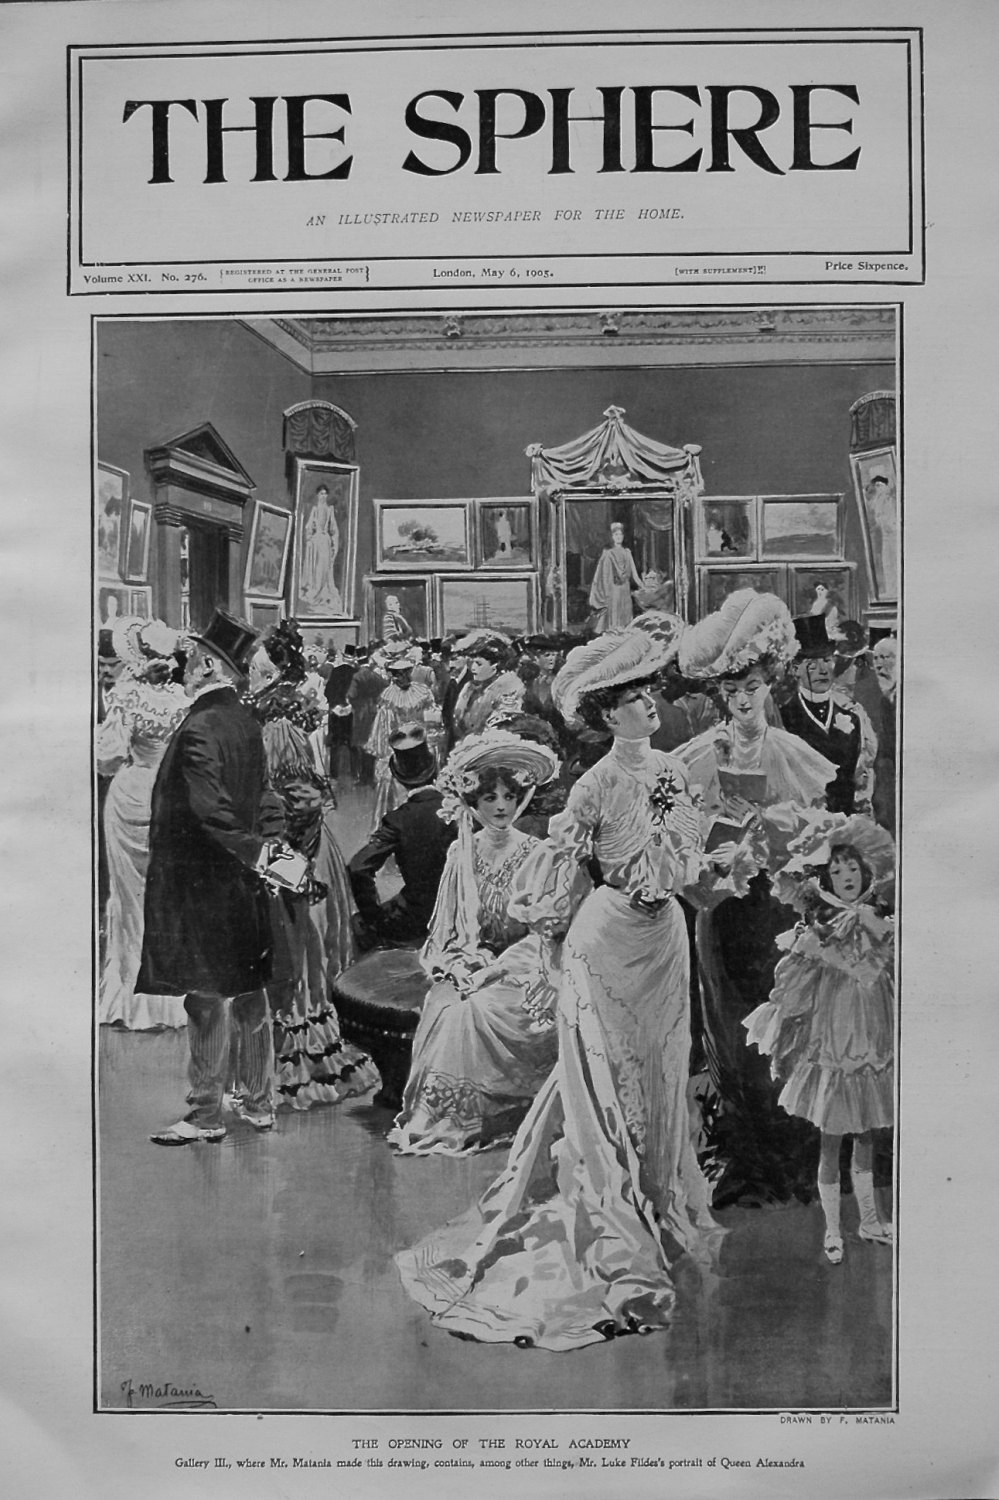 The Opening of the Royal Academy. 1905